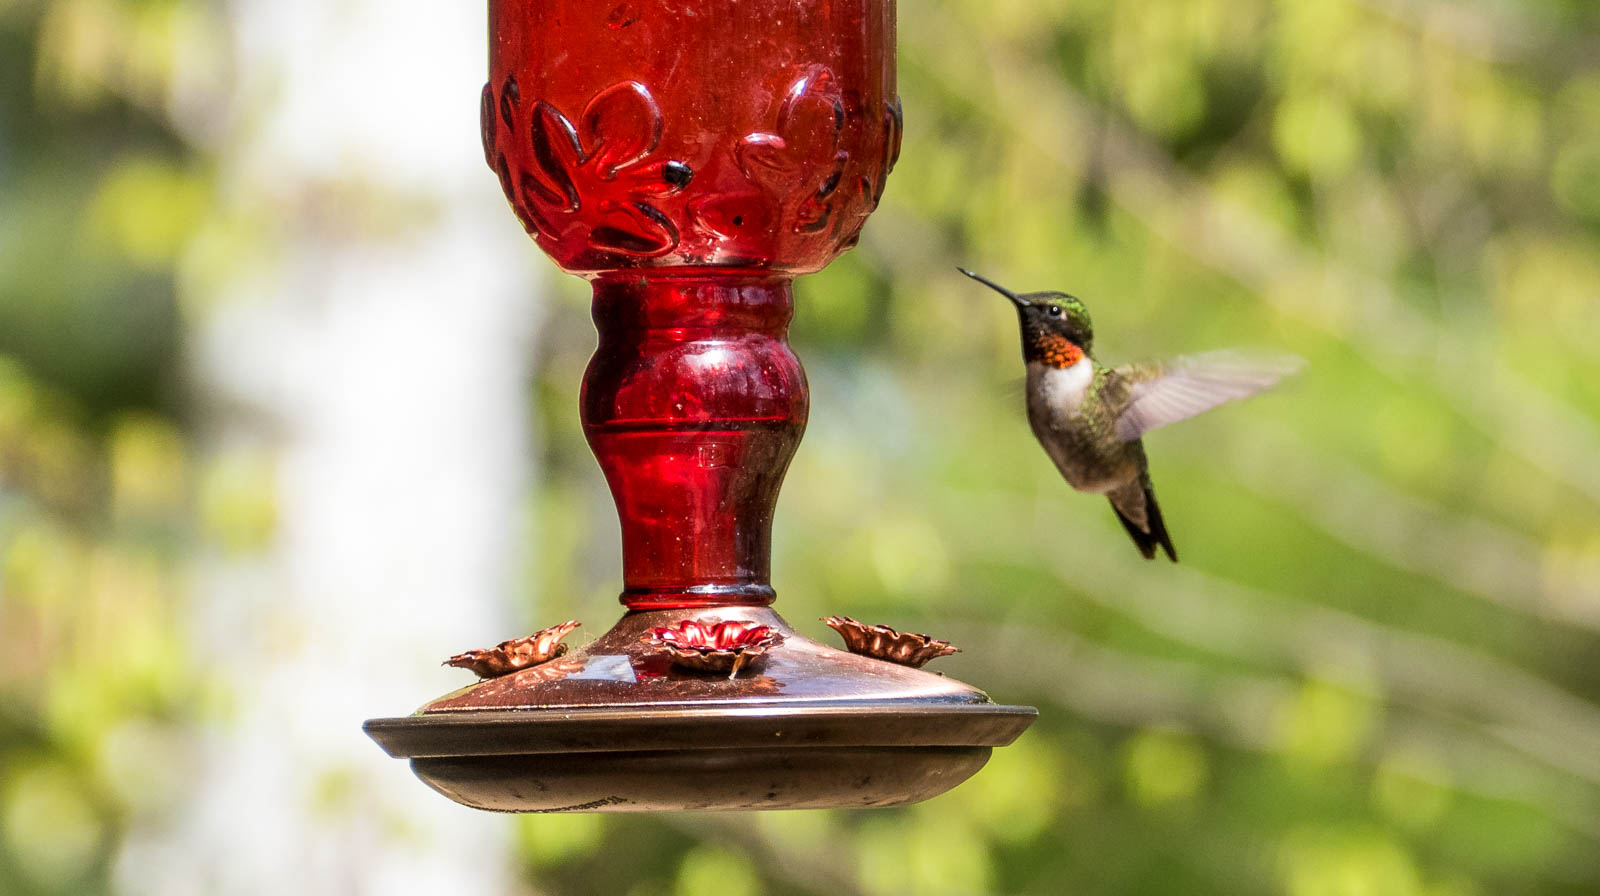 Ruby throated humming bird. Only males have the ruby throat, which is iridescent and only shows in certain angles and lighting.